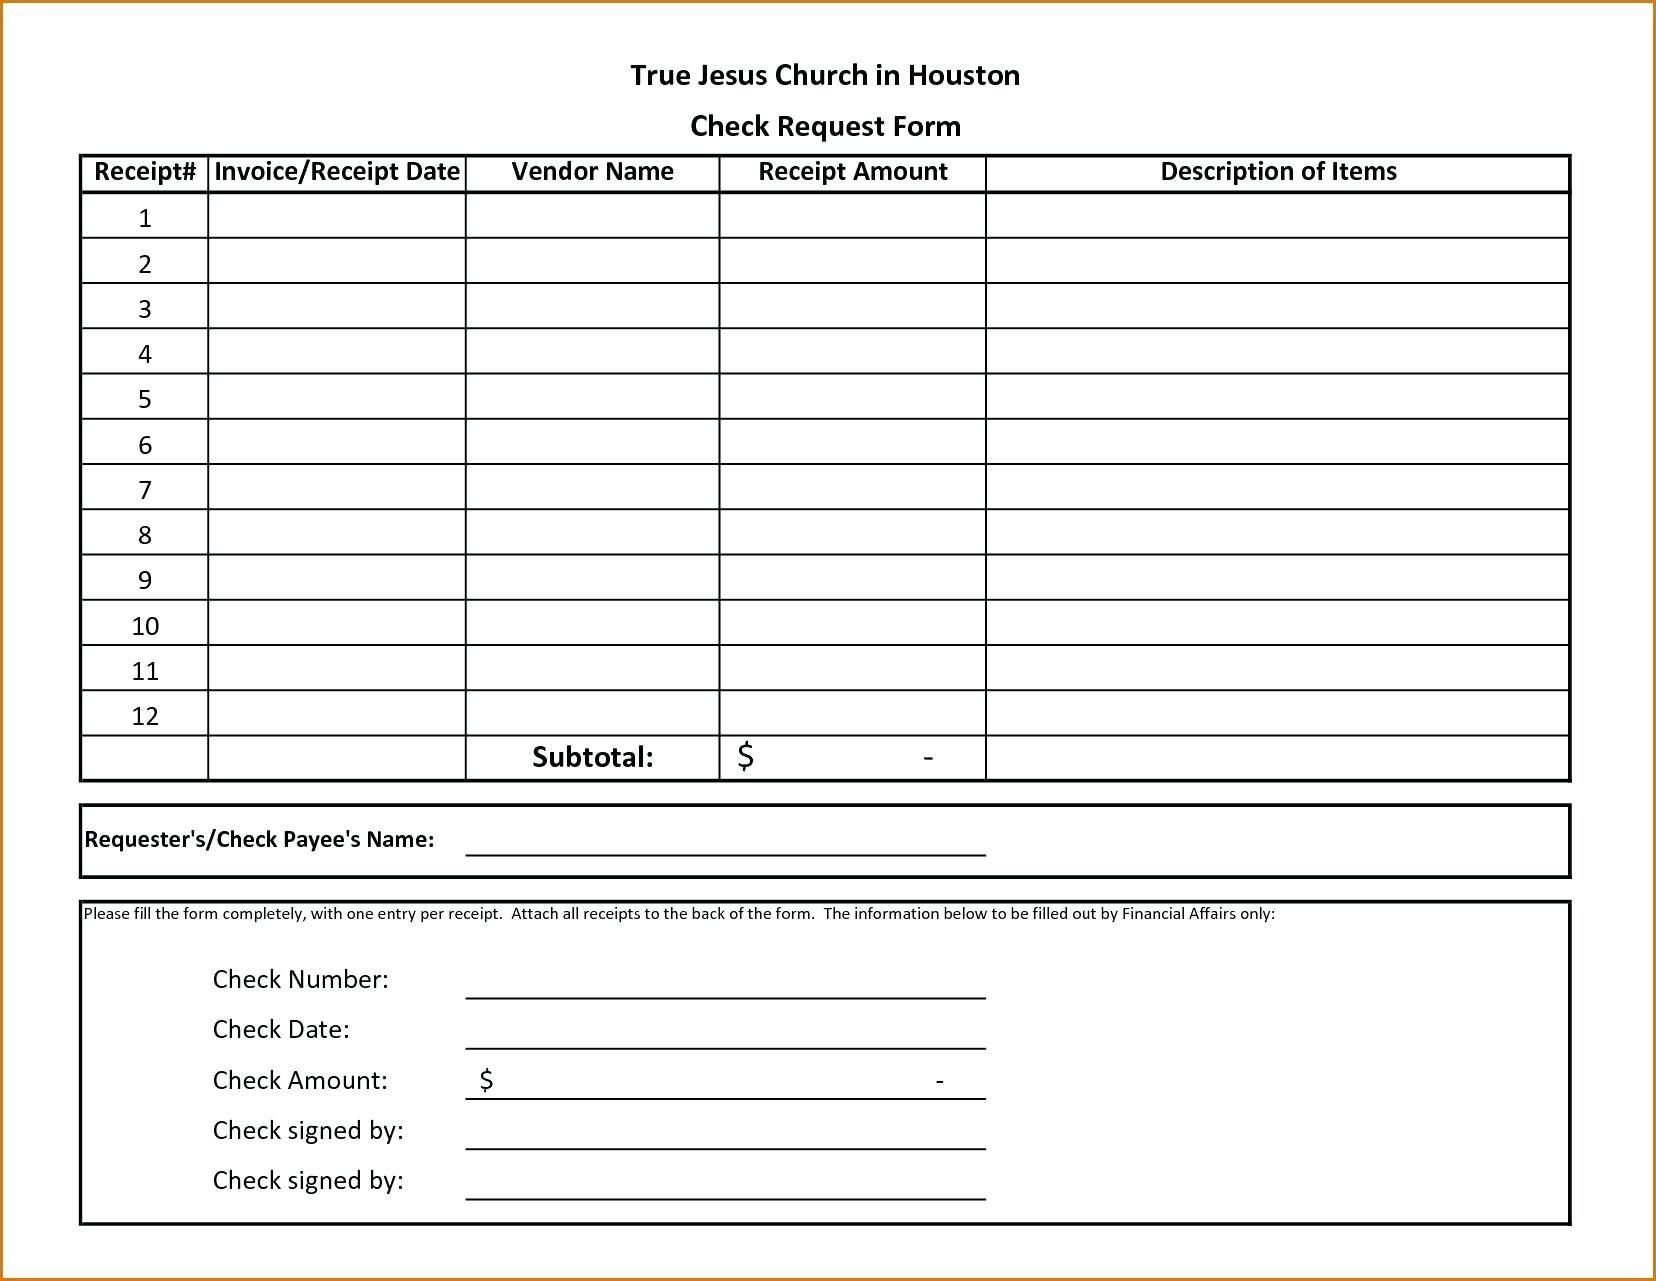 Free Templates Project Request Form Template Word For Check